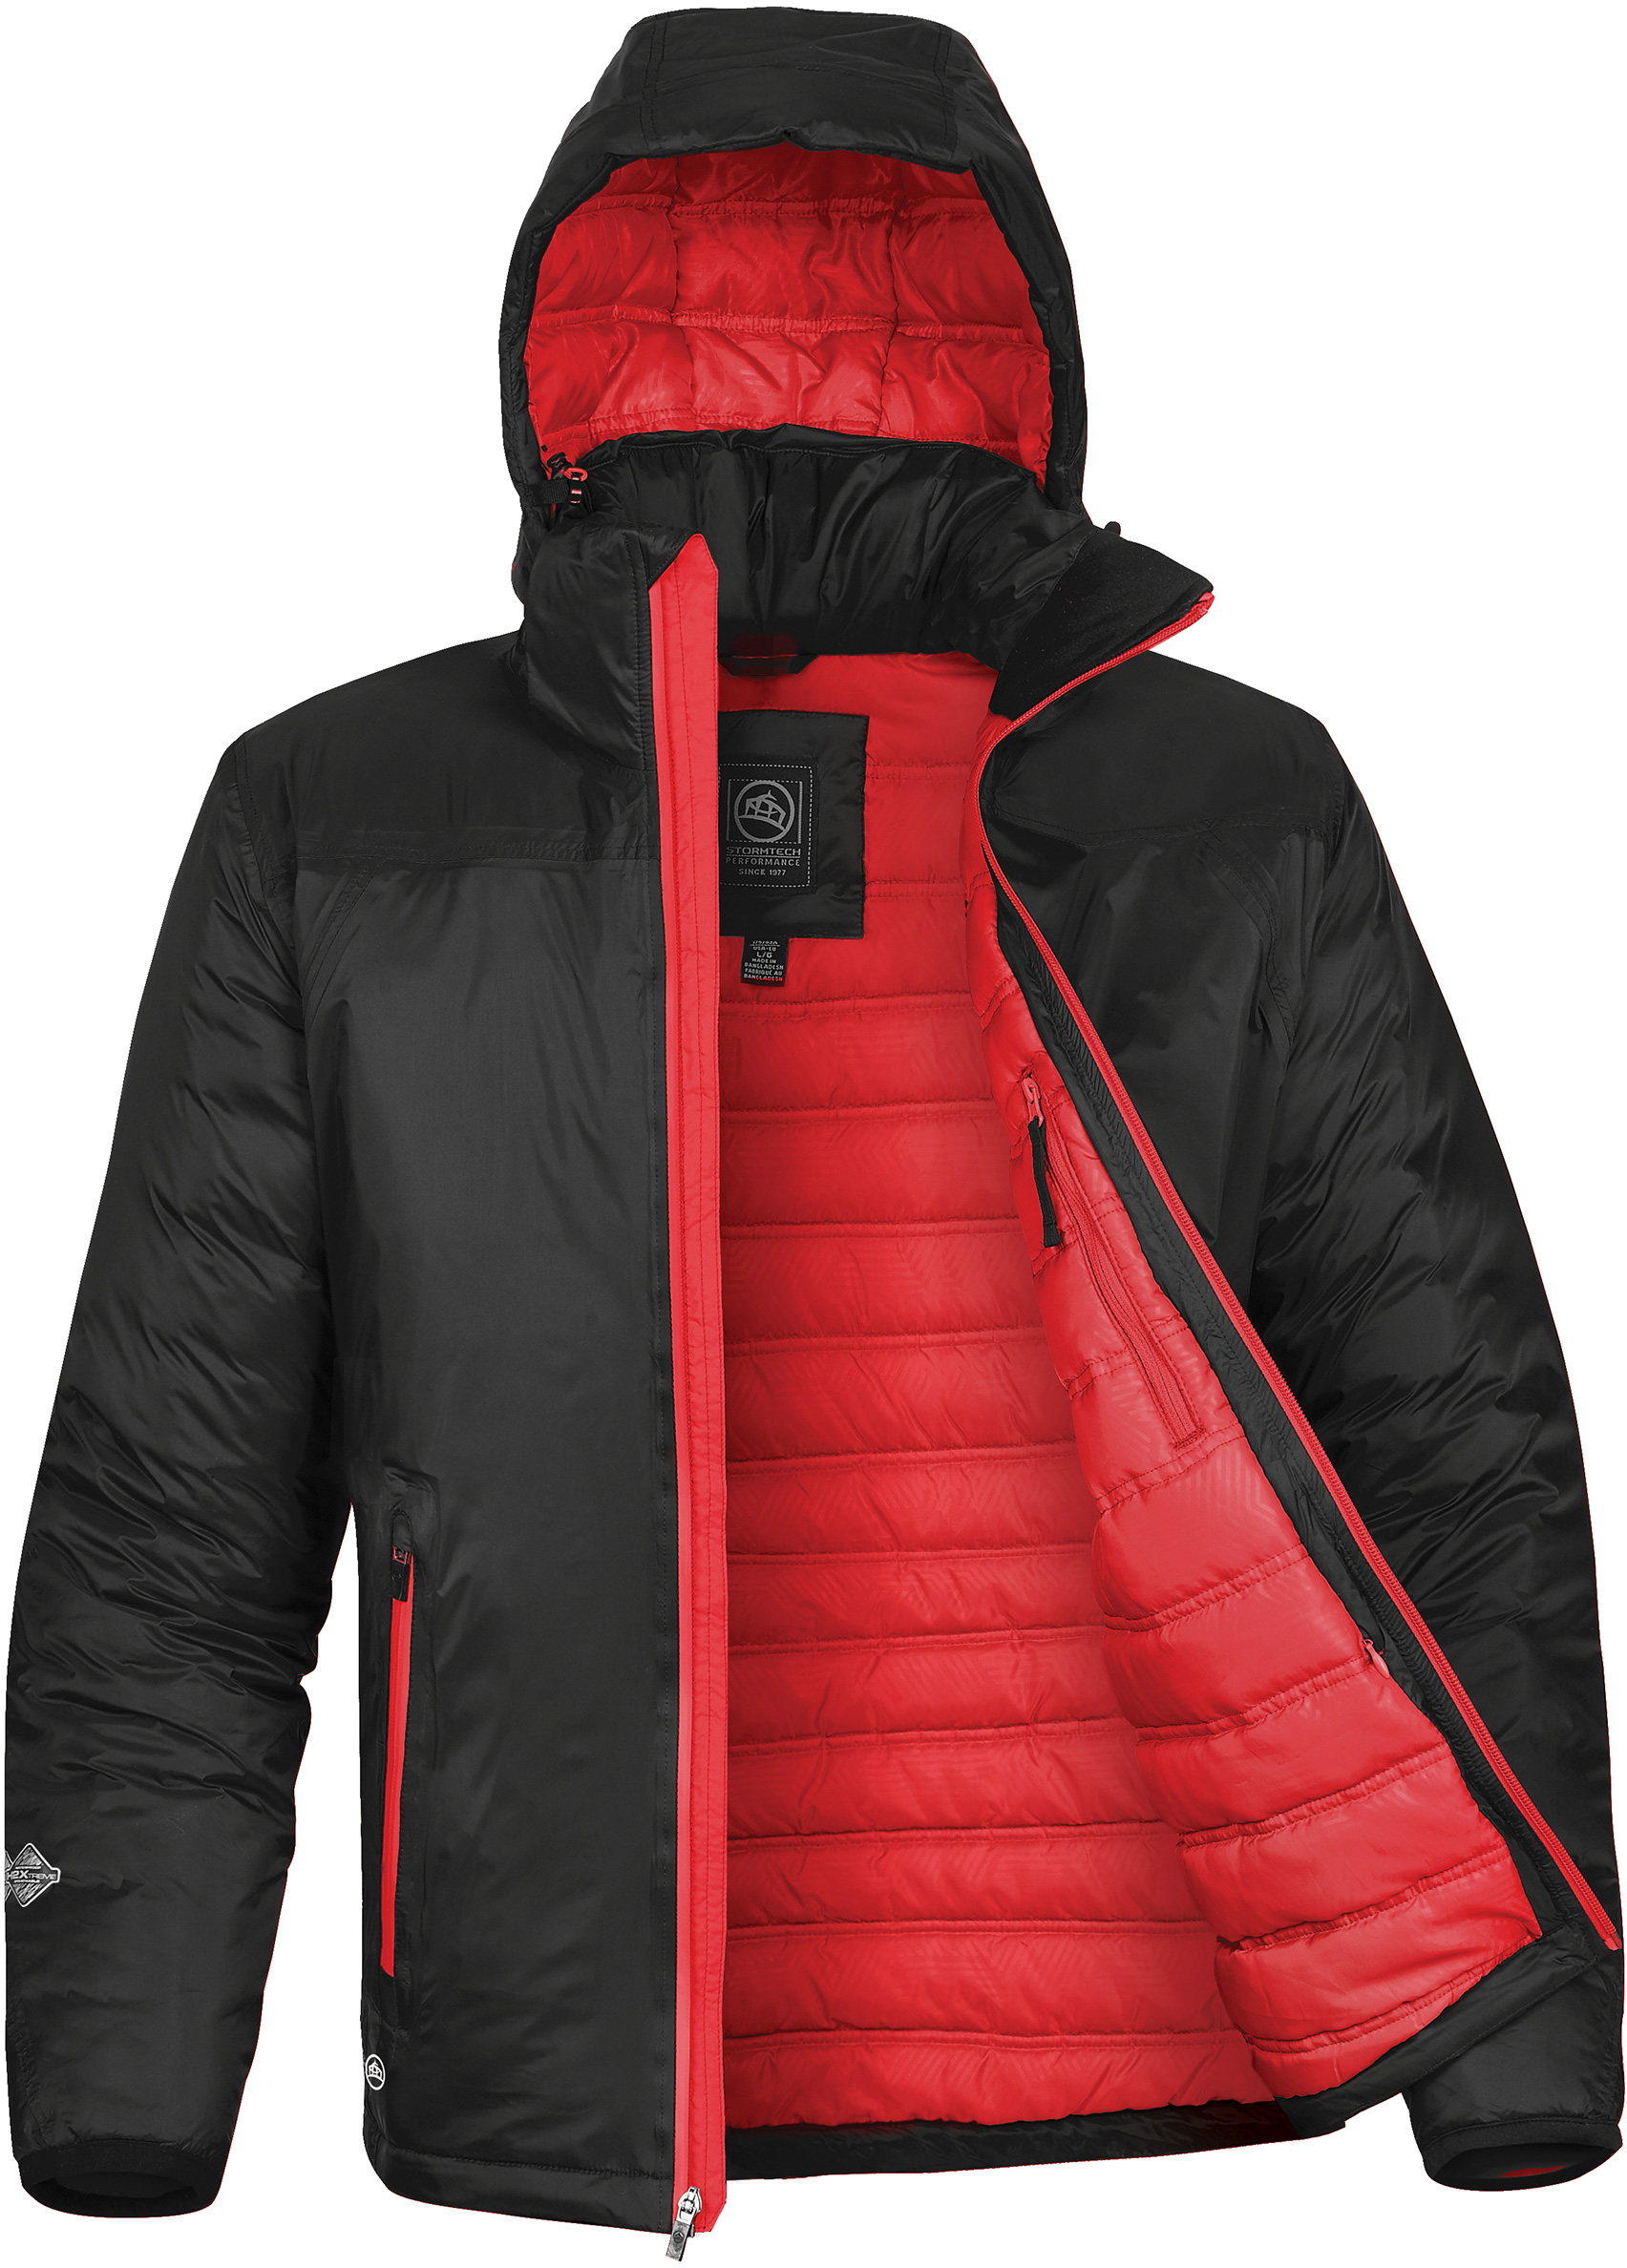 stormtech jacket performance thermal ice